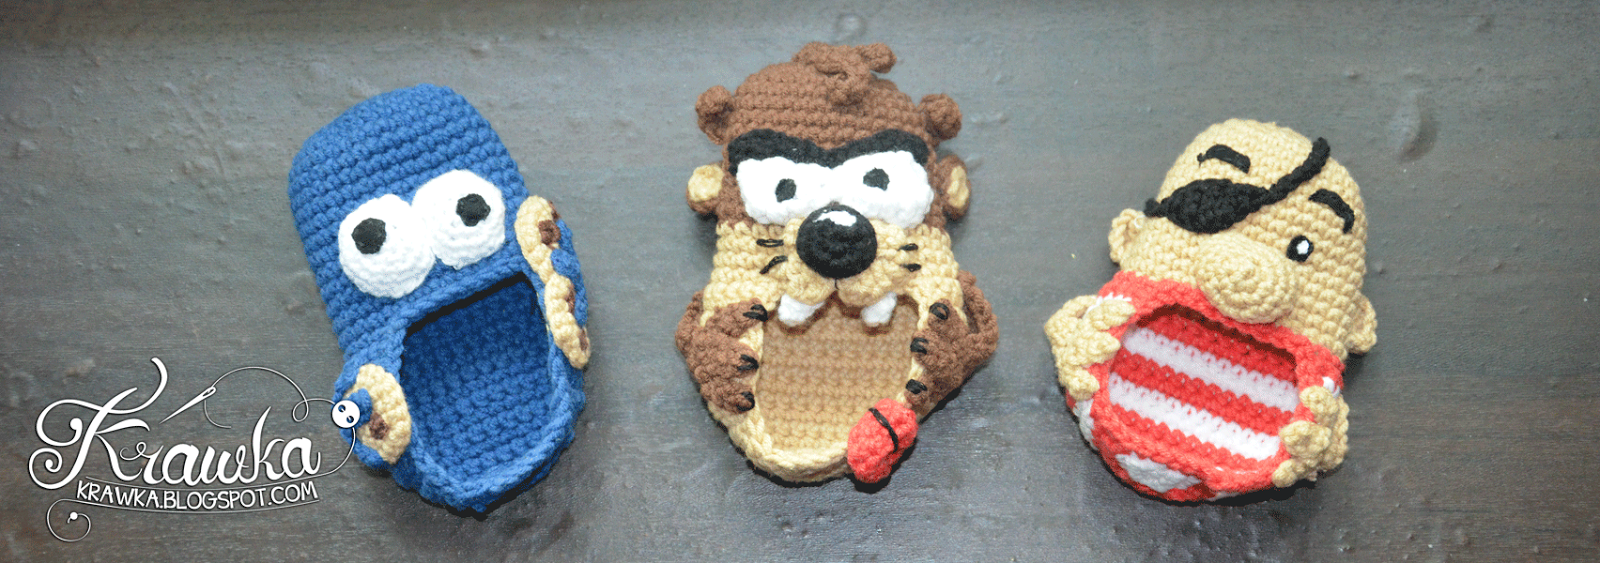 Buciki, kapcie dziecięce w kształcie cistaeczkowego potwora, diabła tasmańskiego, pirat - zrobione na szydełku techniką amigurumi. Crochet baby boots in shape of cookie monster, tasmanian devil crochet, pirate inspired amigurumi